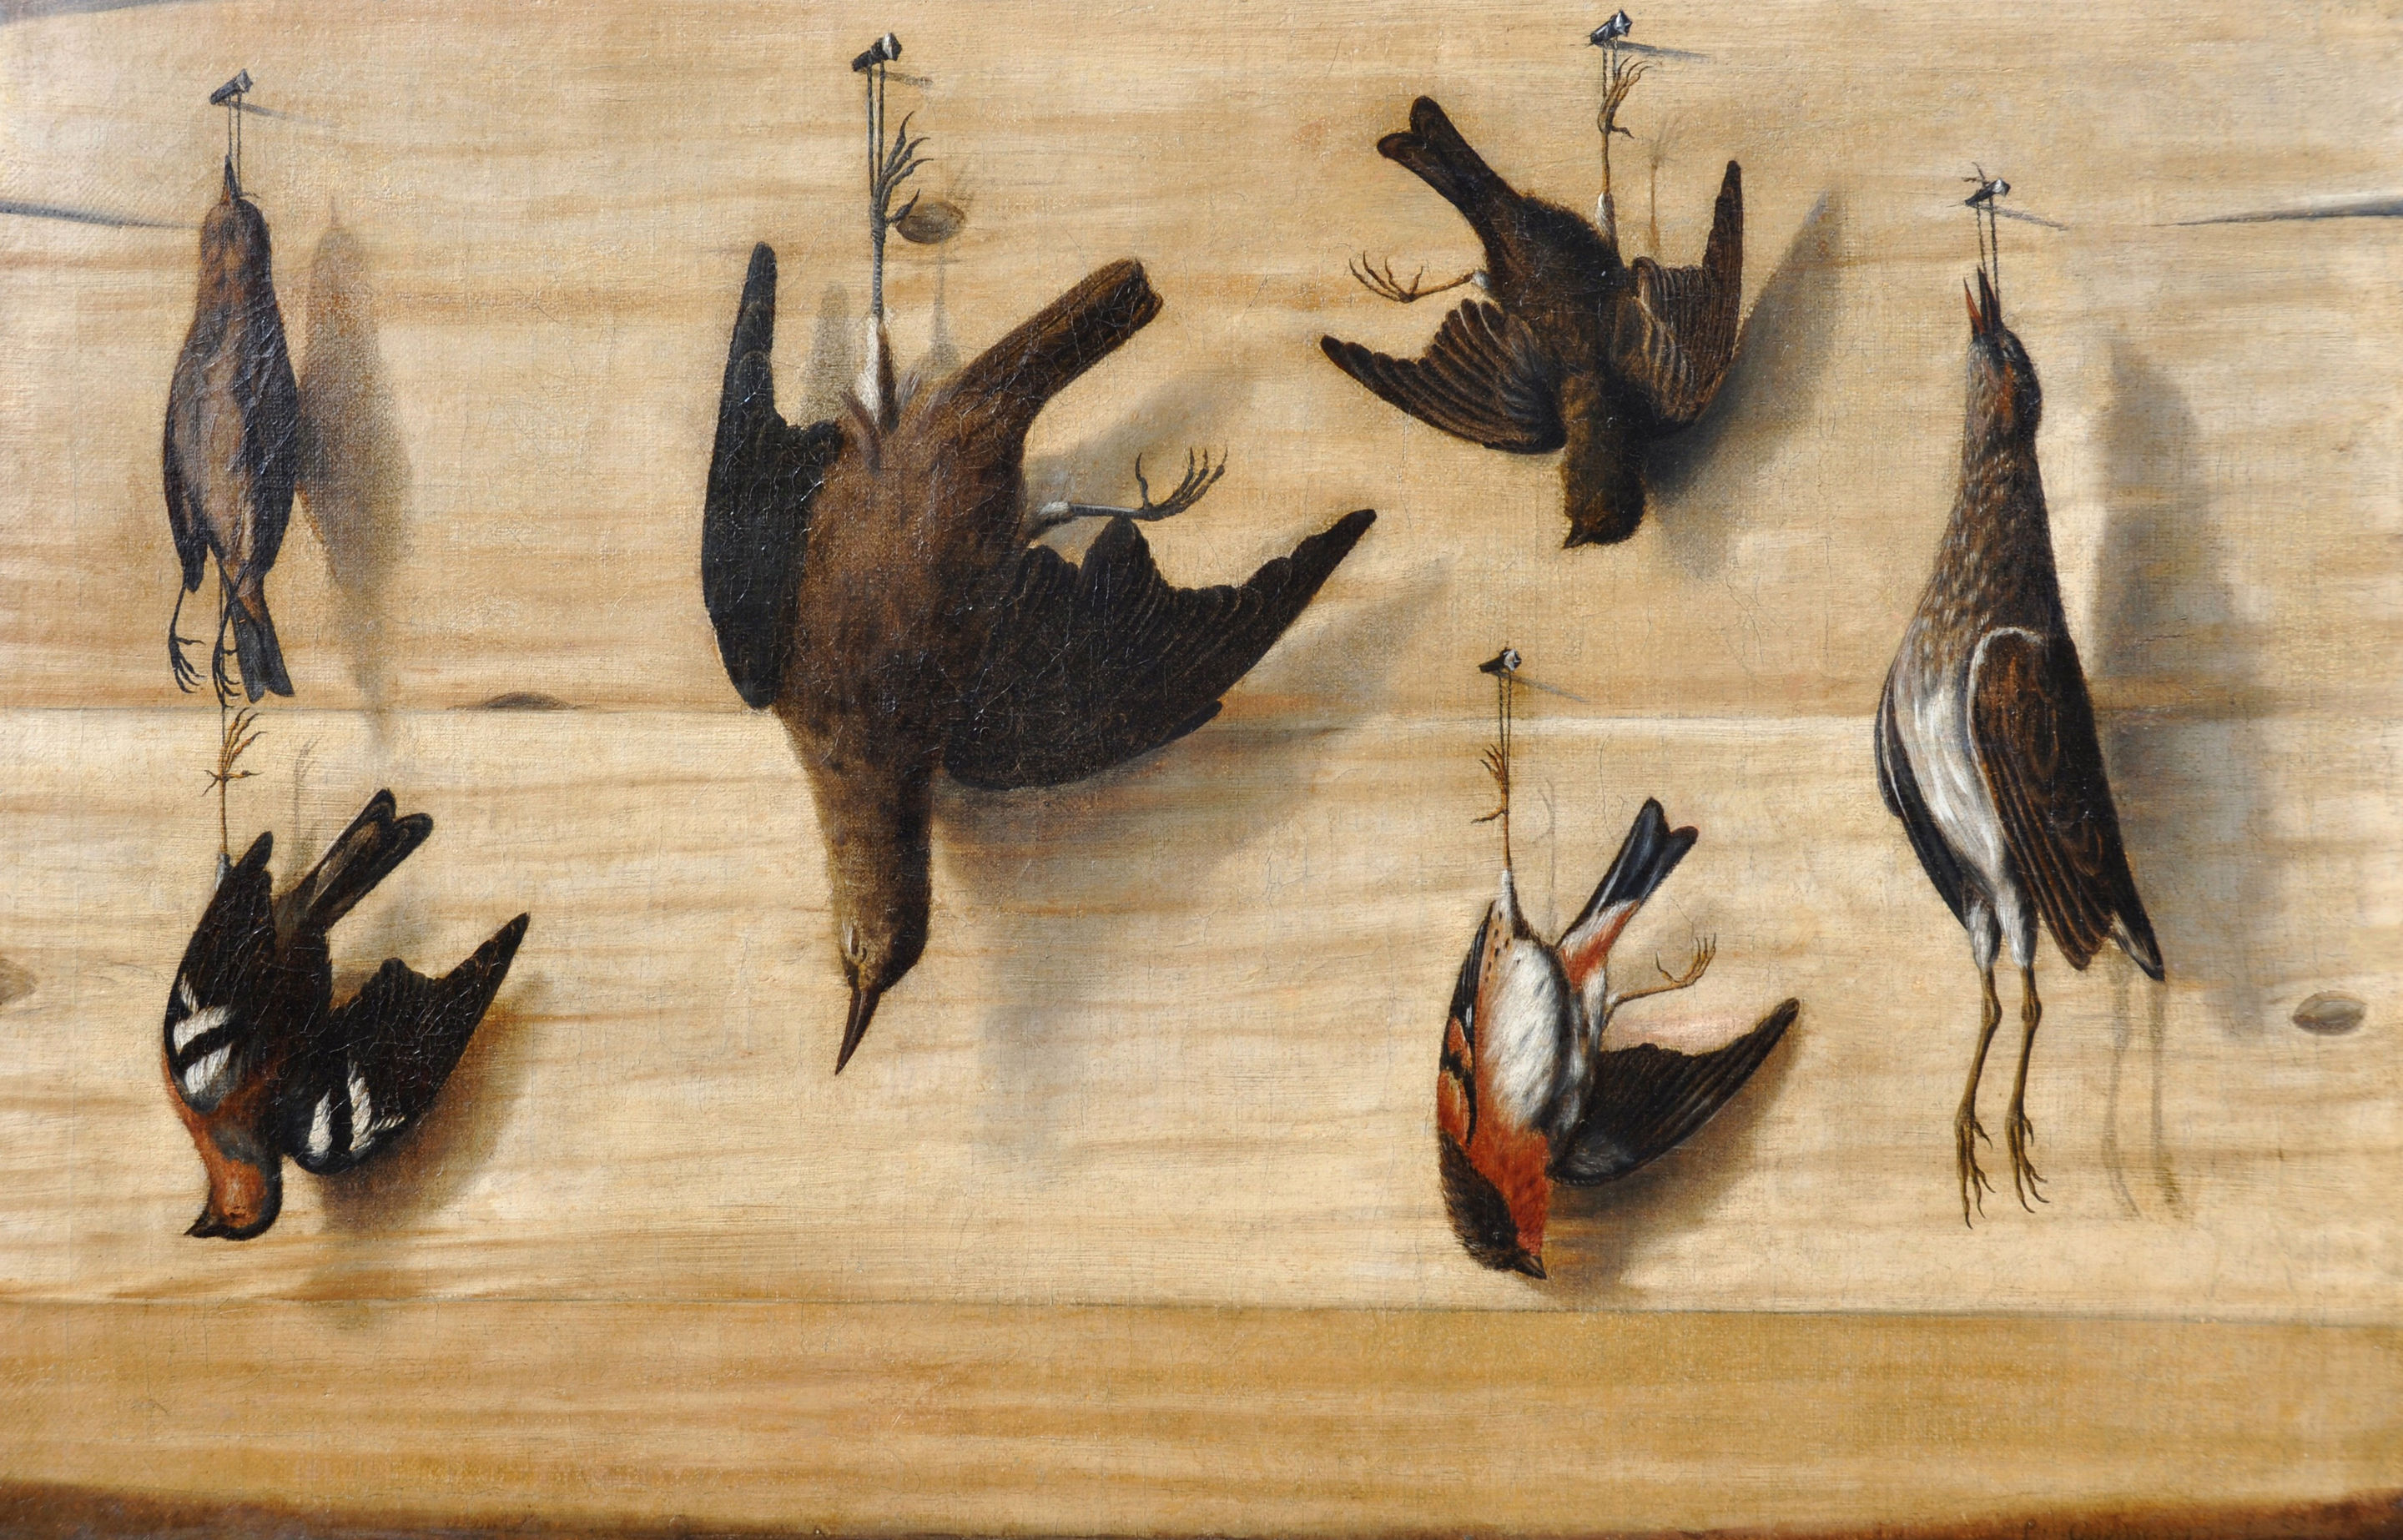 File:Laurent Geedts - Trompe l\'oeil still life of birds hanging from ...